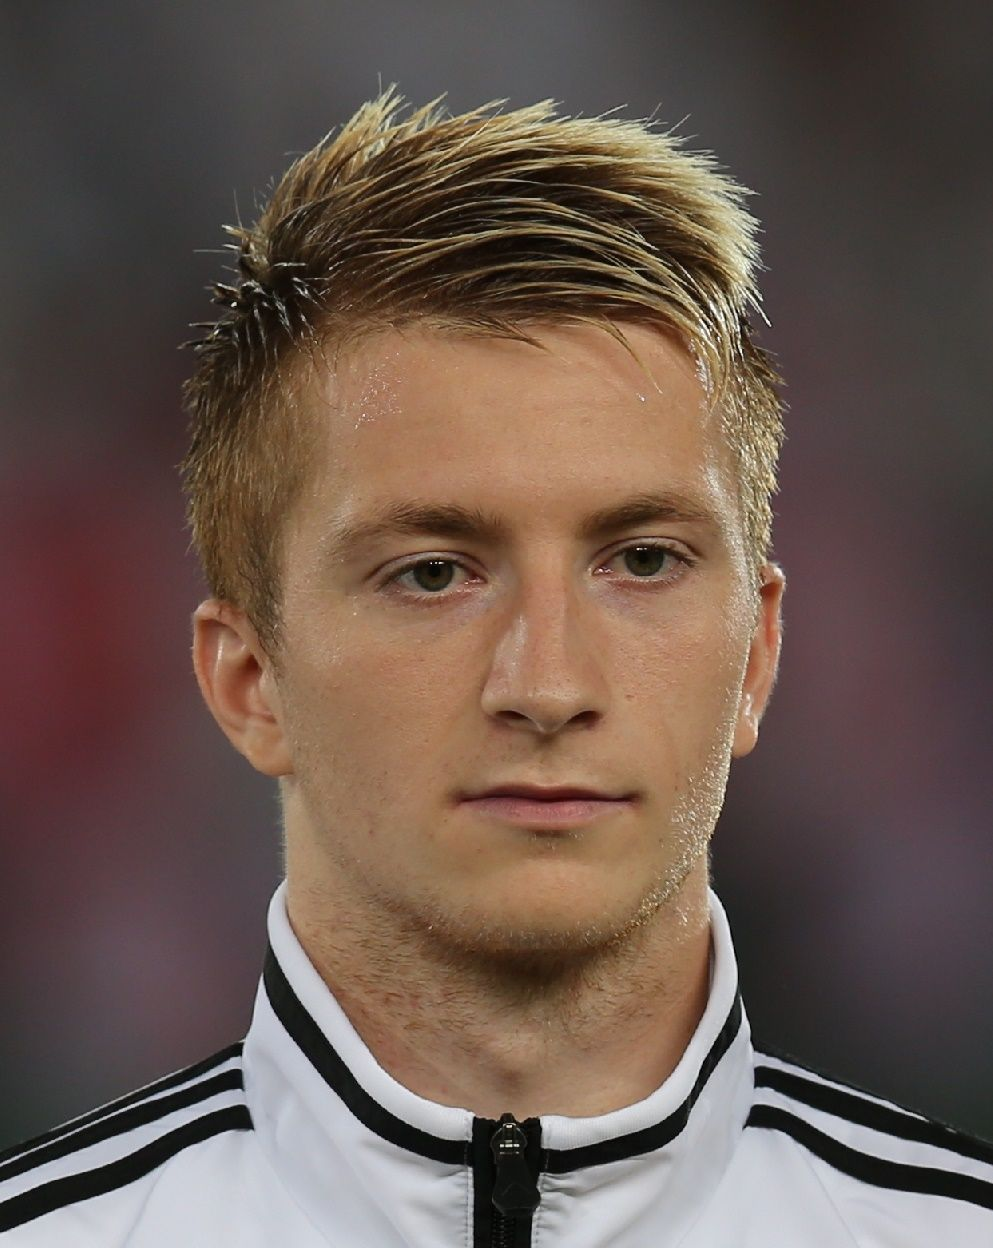 Marco Reus Olaseku Frisur Manner Frisuren In 2019 Marco Reus